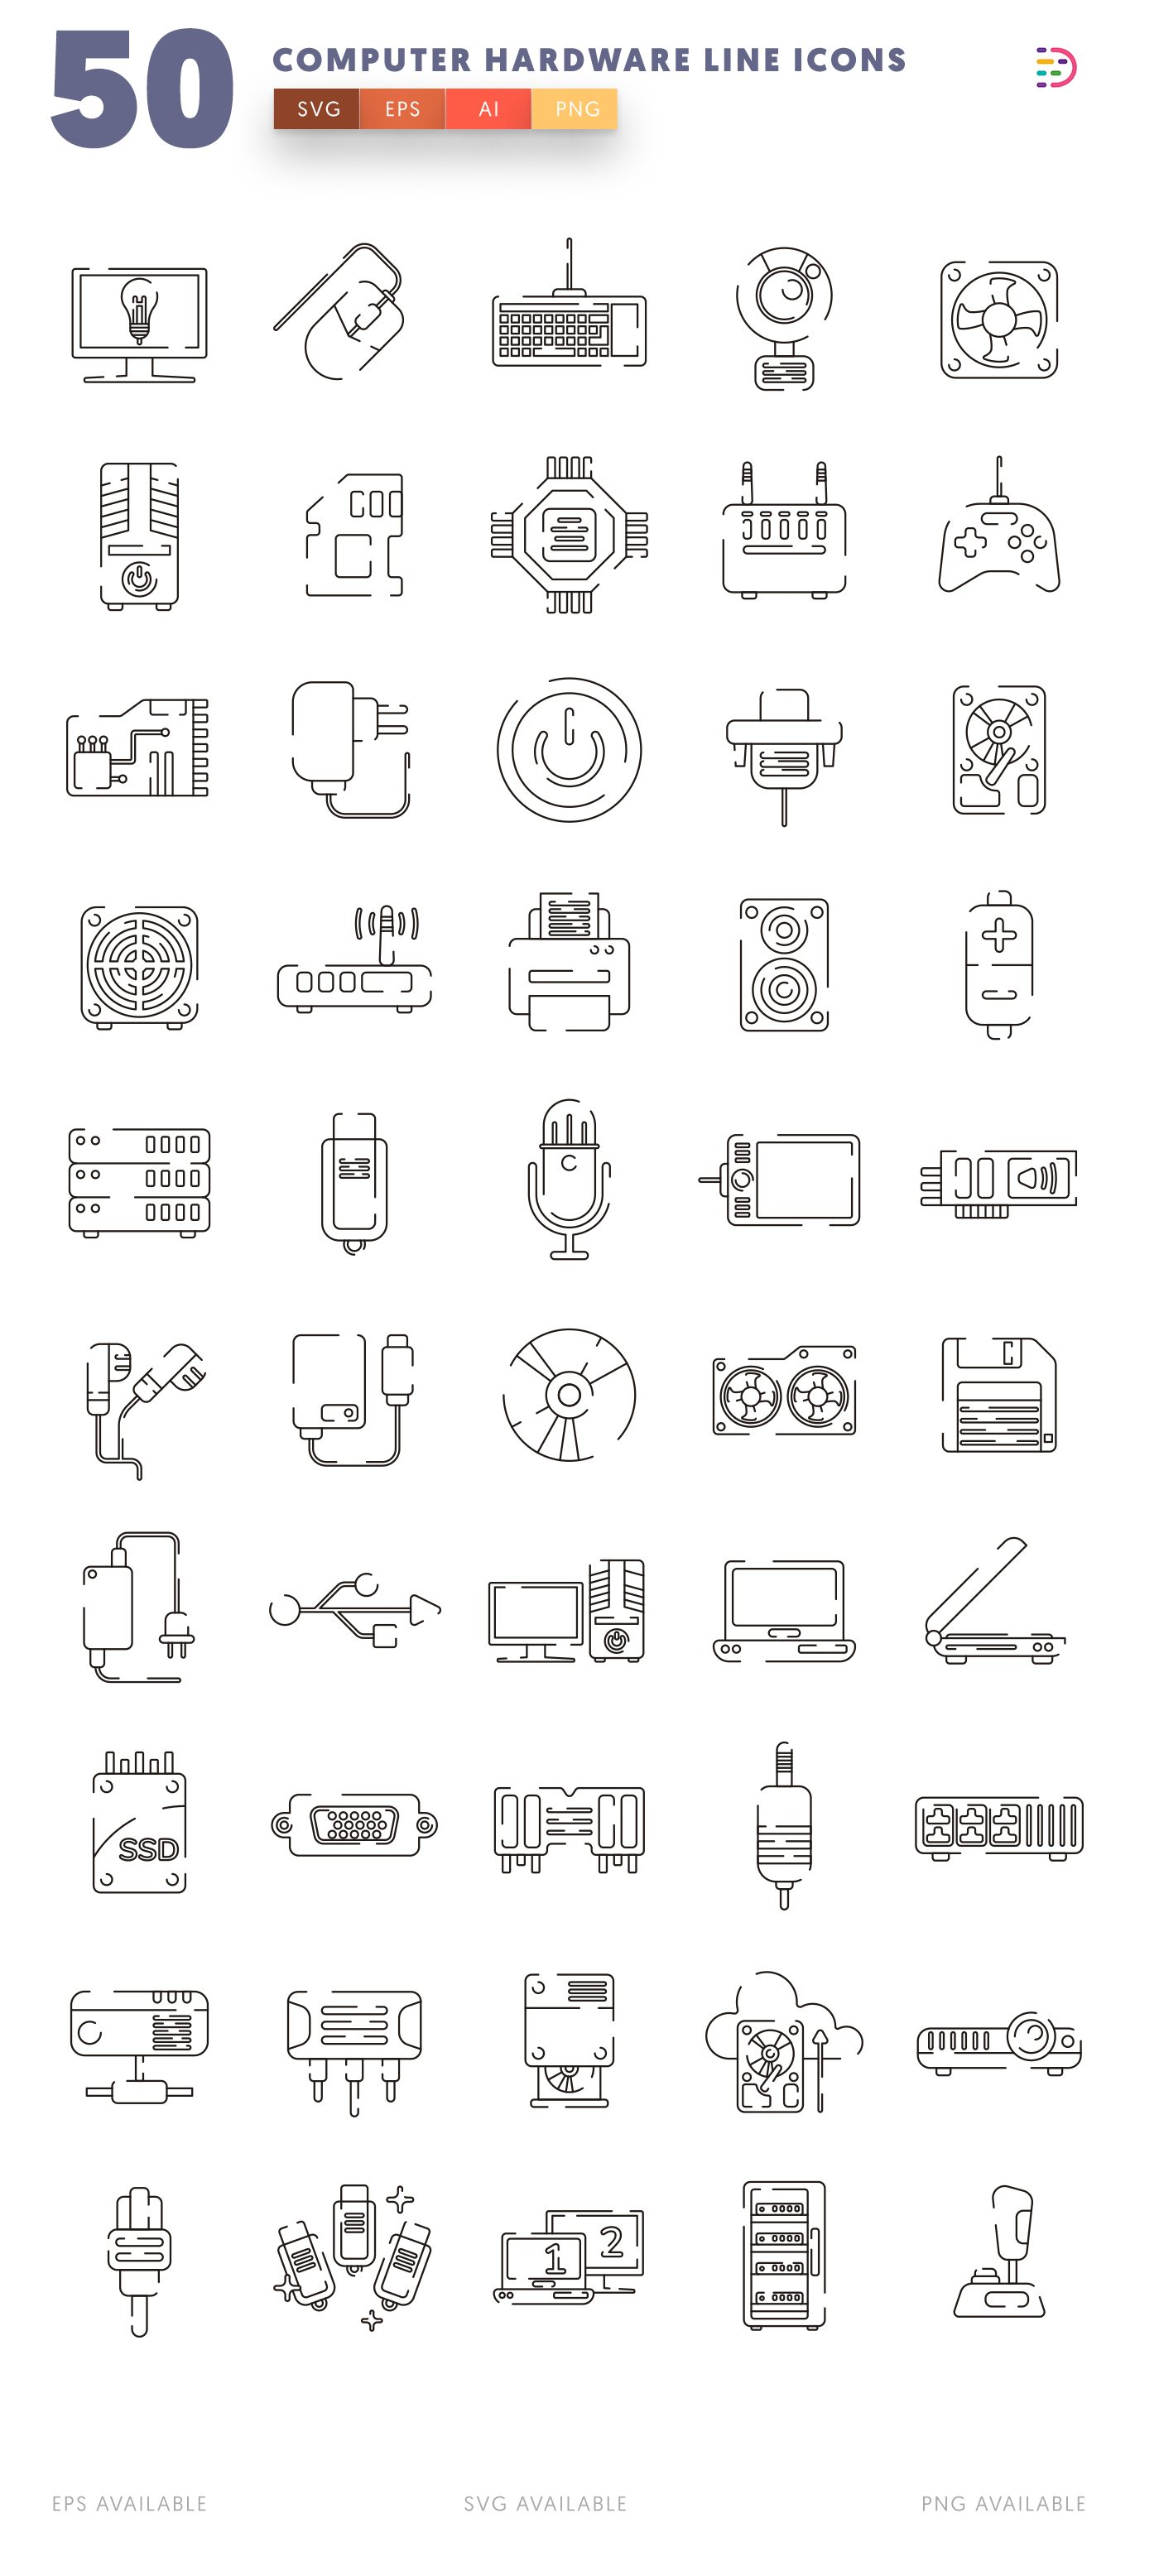 Computer Hardware Line icon pack